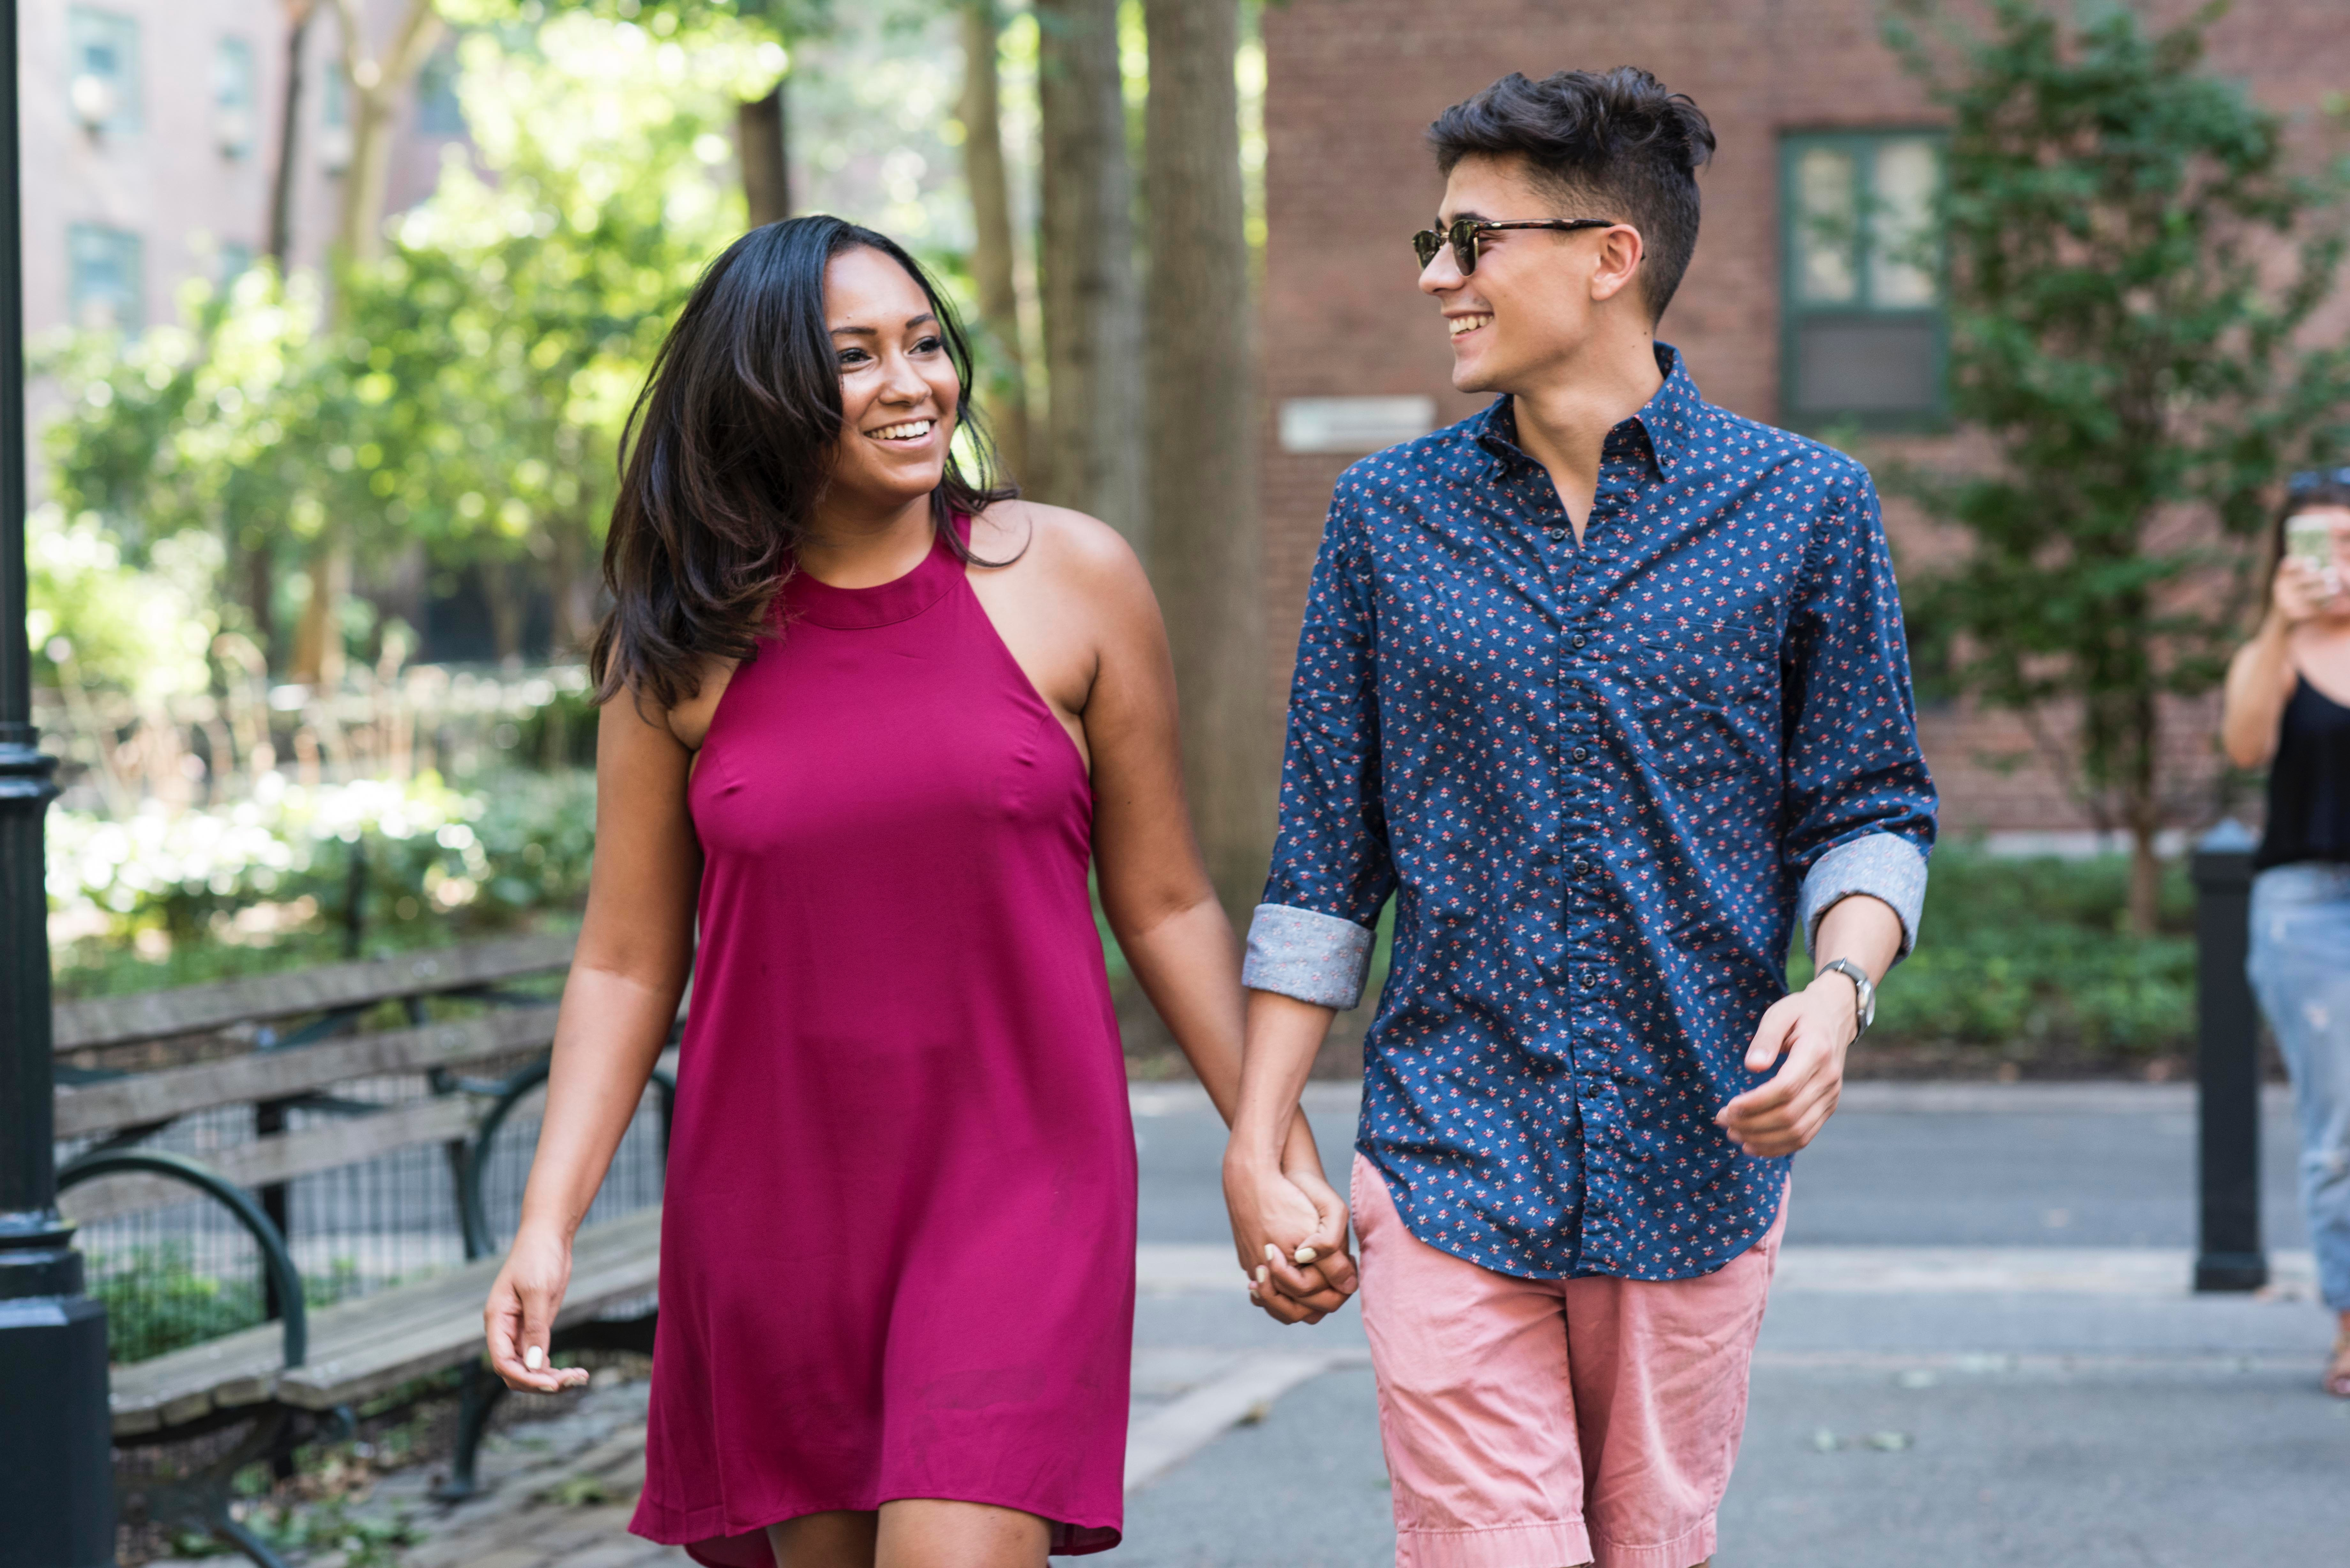 9 First Date Tips For When You're Going Out With Someone You